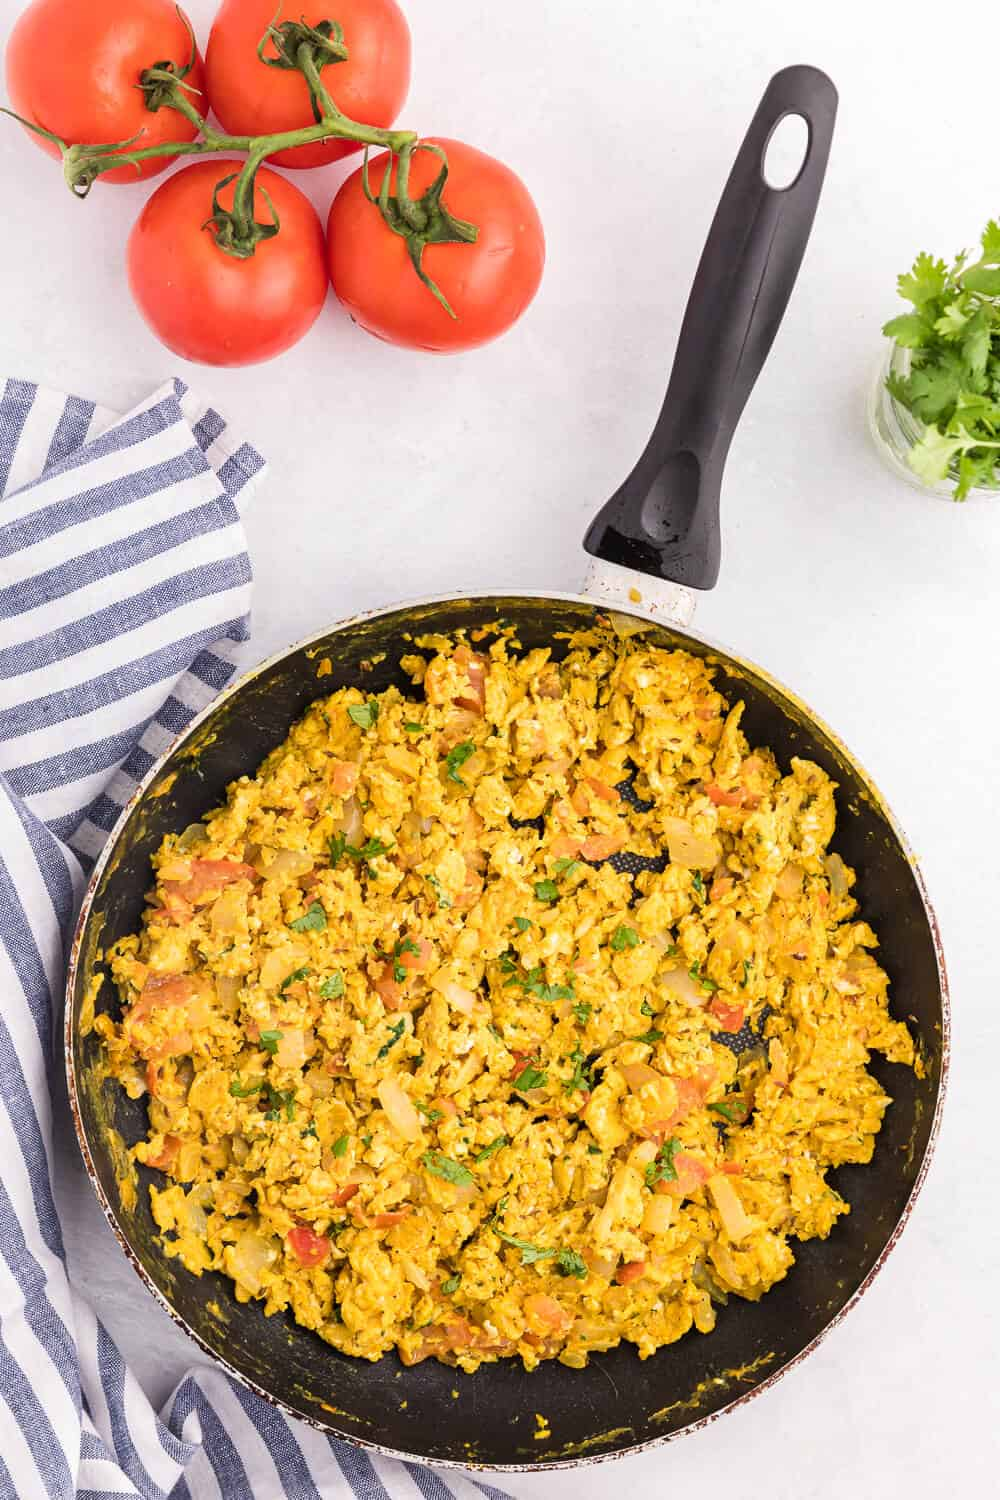 Indian Scrambled Eggs - Bring Indian seasonings to the breakfast table! This quick morning staple is packed with cumin, onion, green chiles, tomatoes, turmeric, and cilantro.